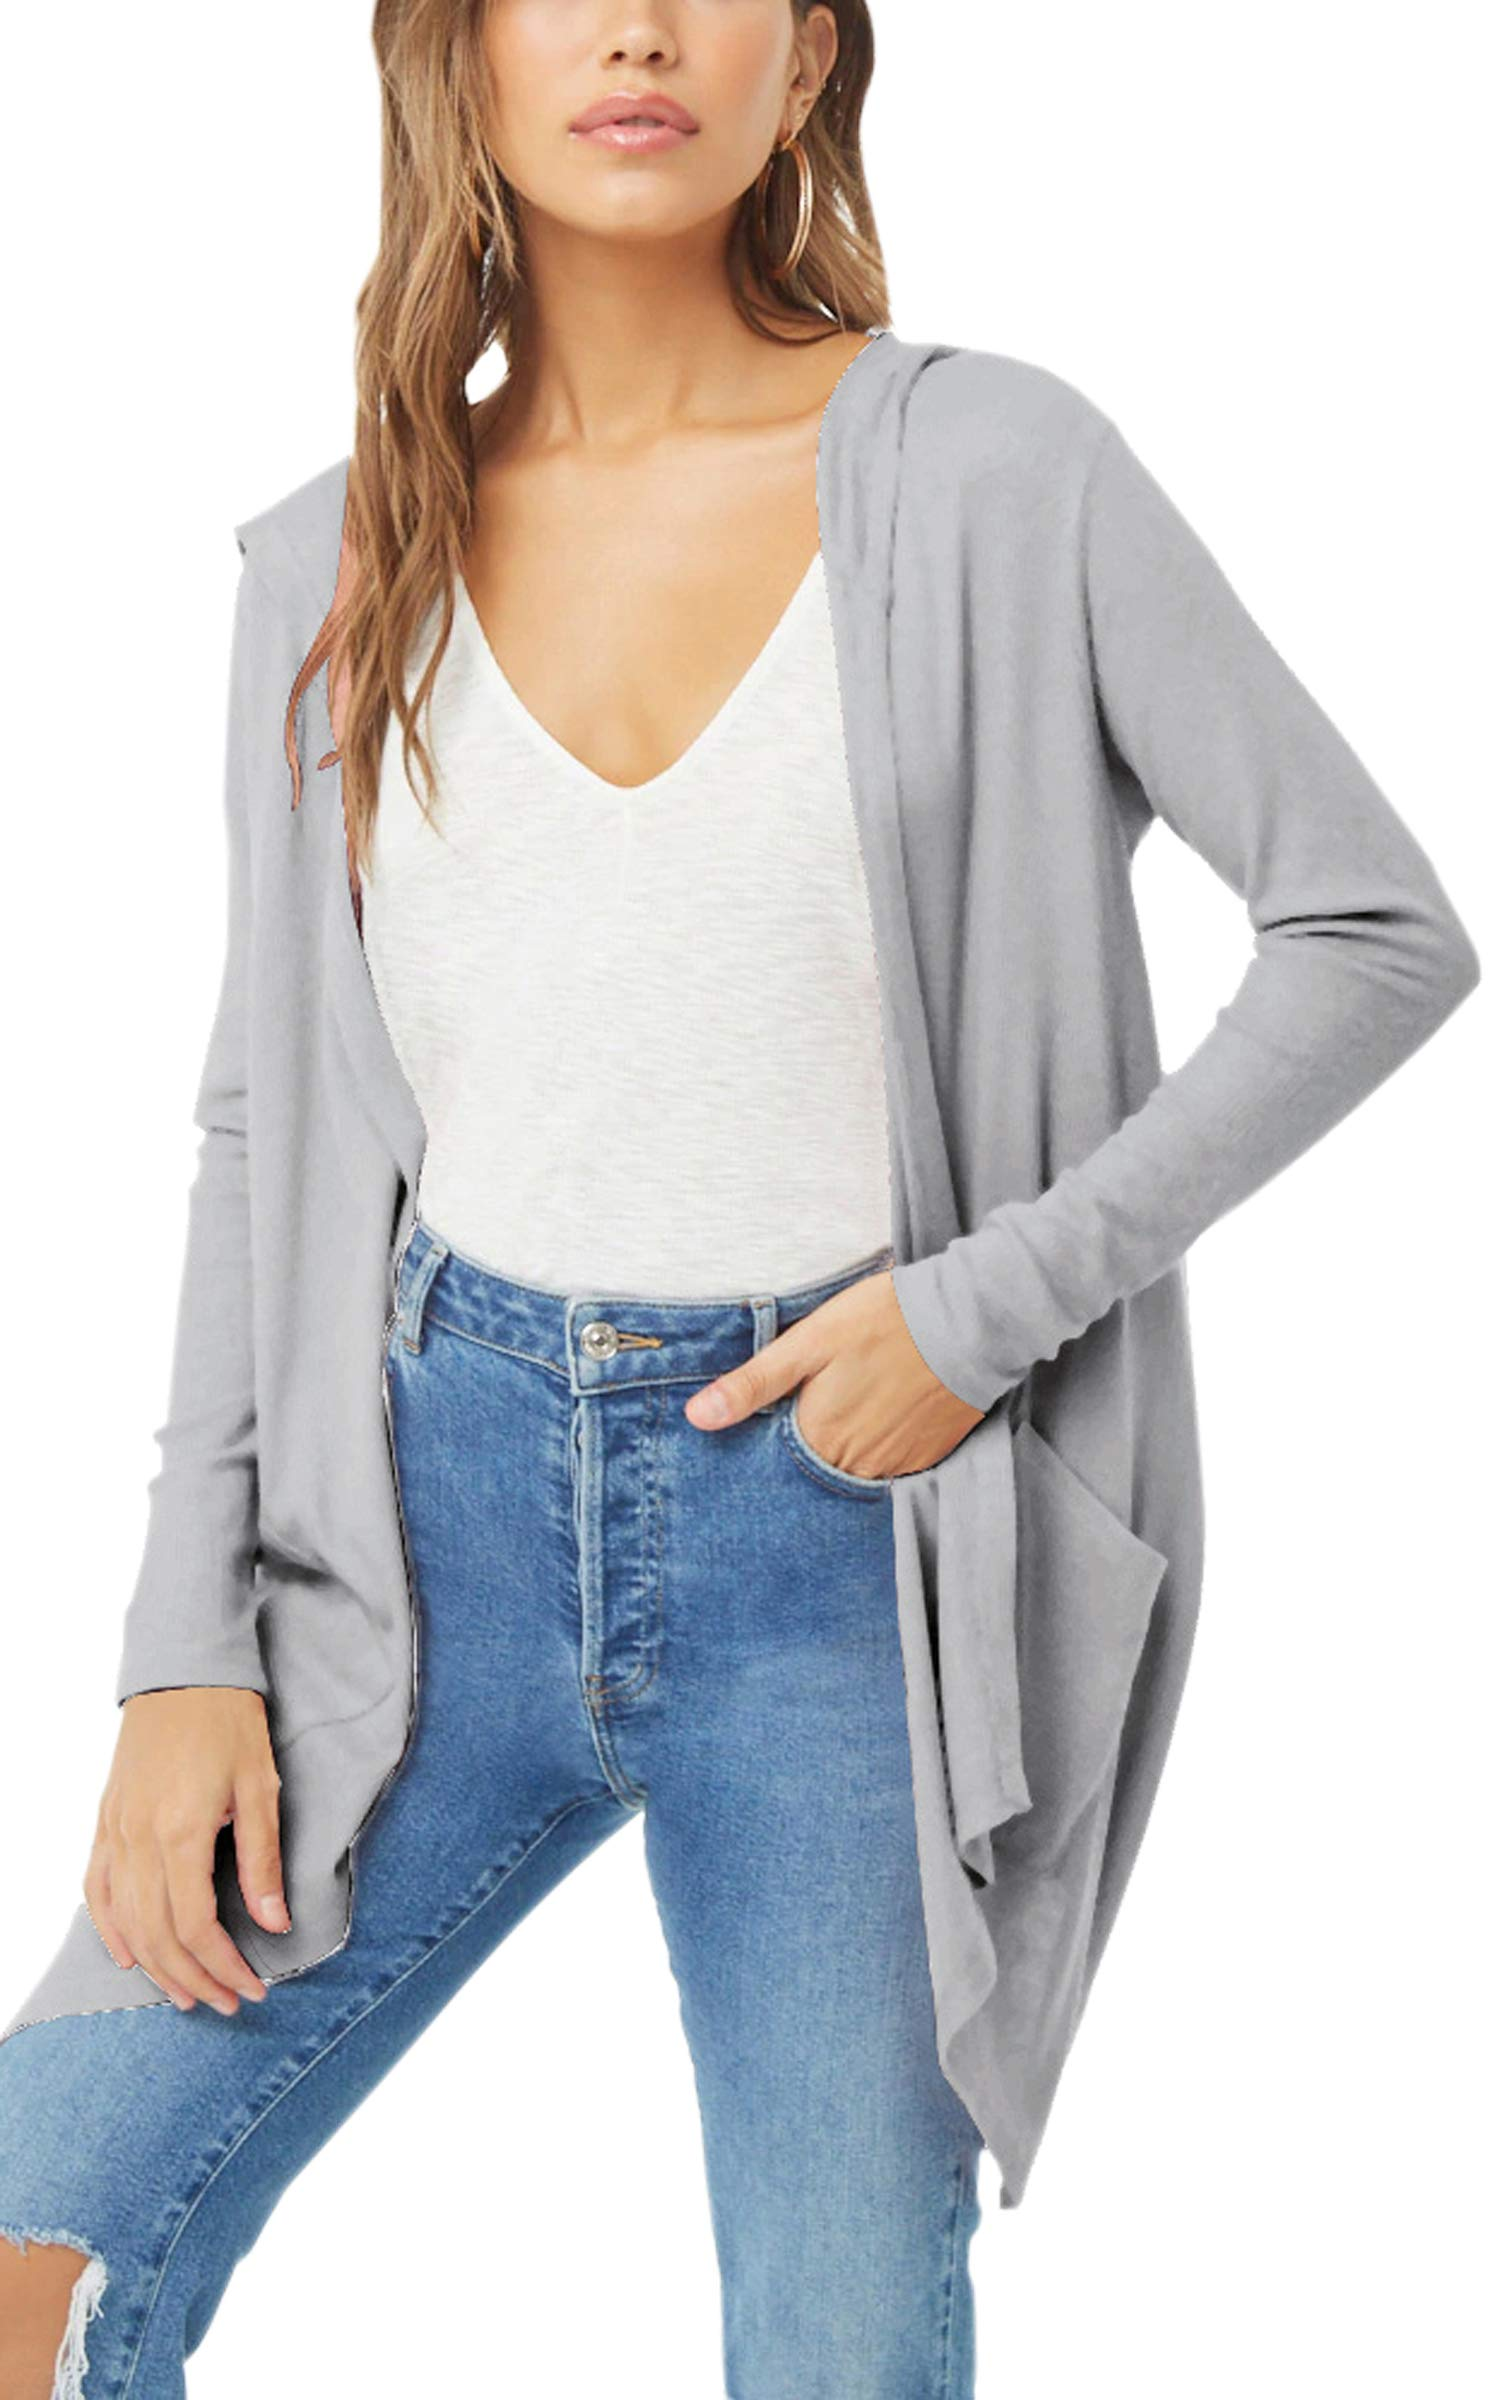 Hibluco Women's Casual Irregular Open Front Cardigans with Hoodie and Pockets